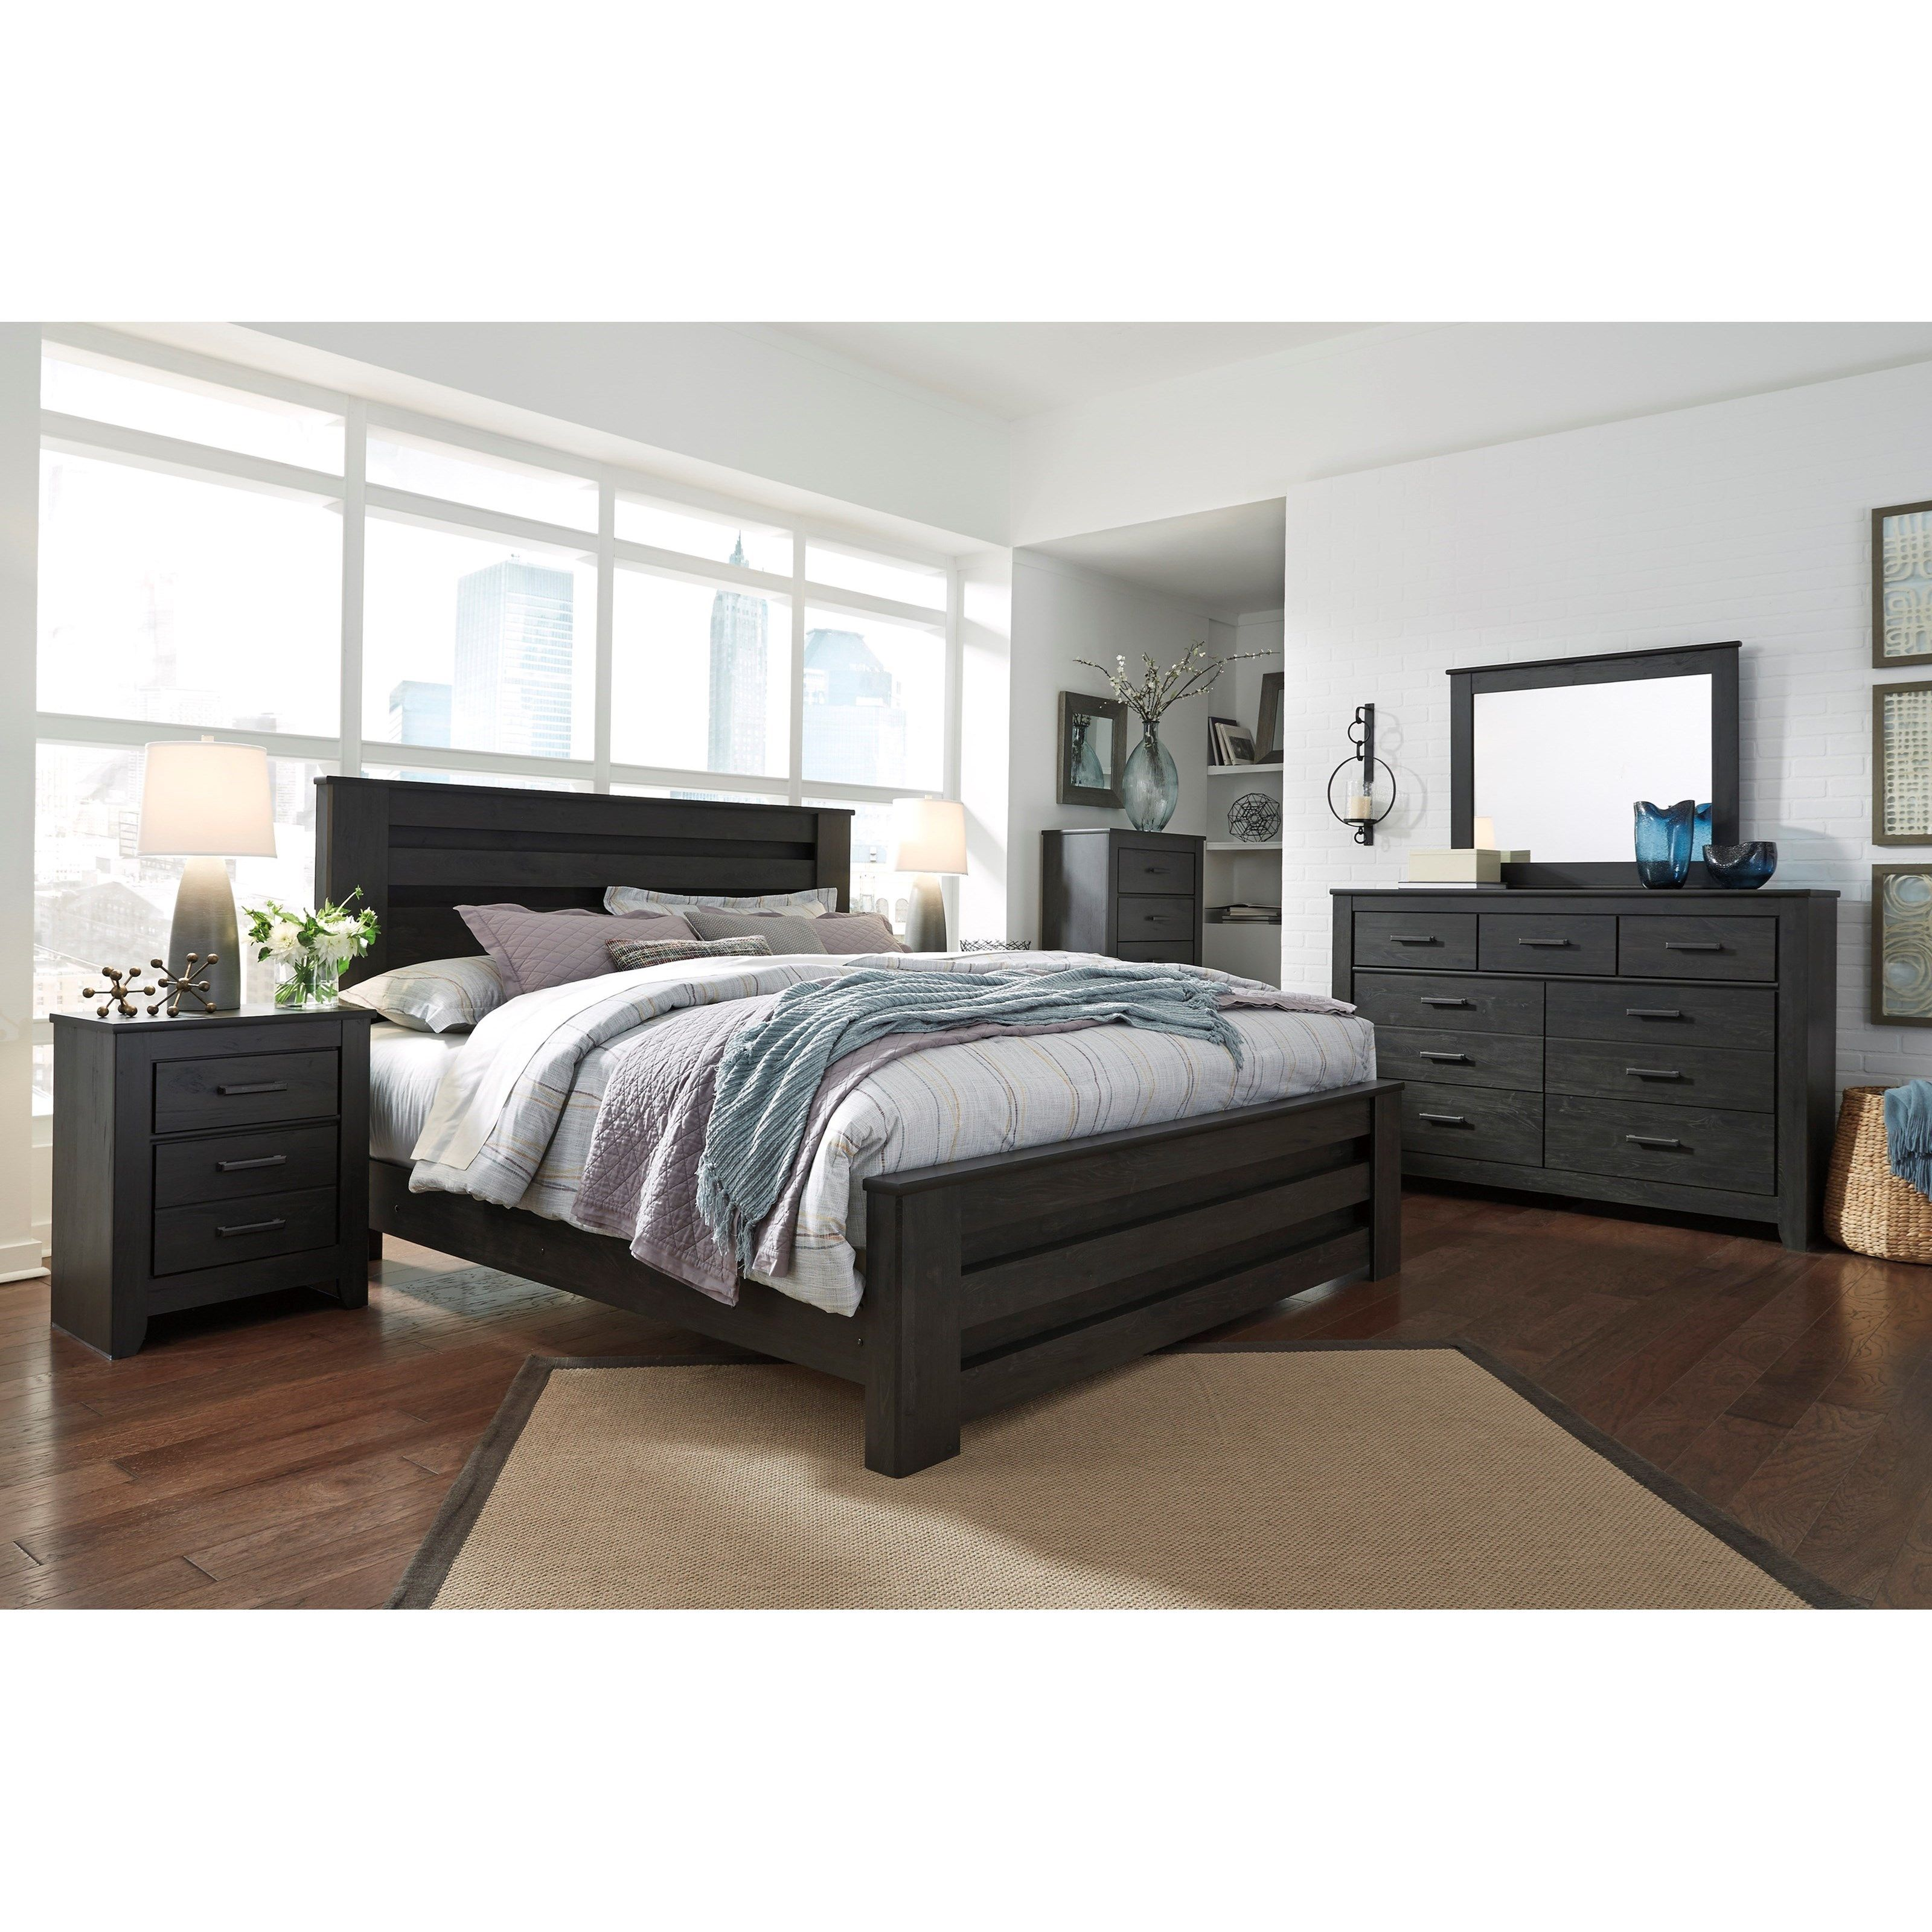 Brinxton King Bedroom Group By Signature Design By Ashley Ashley